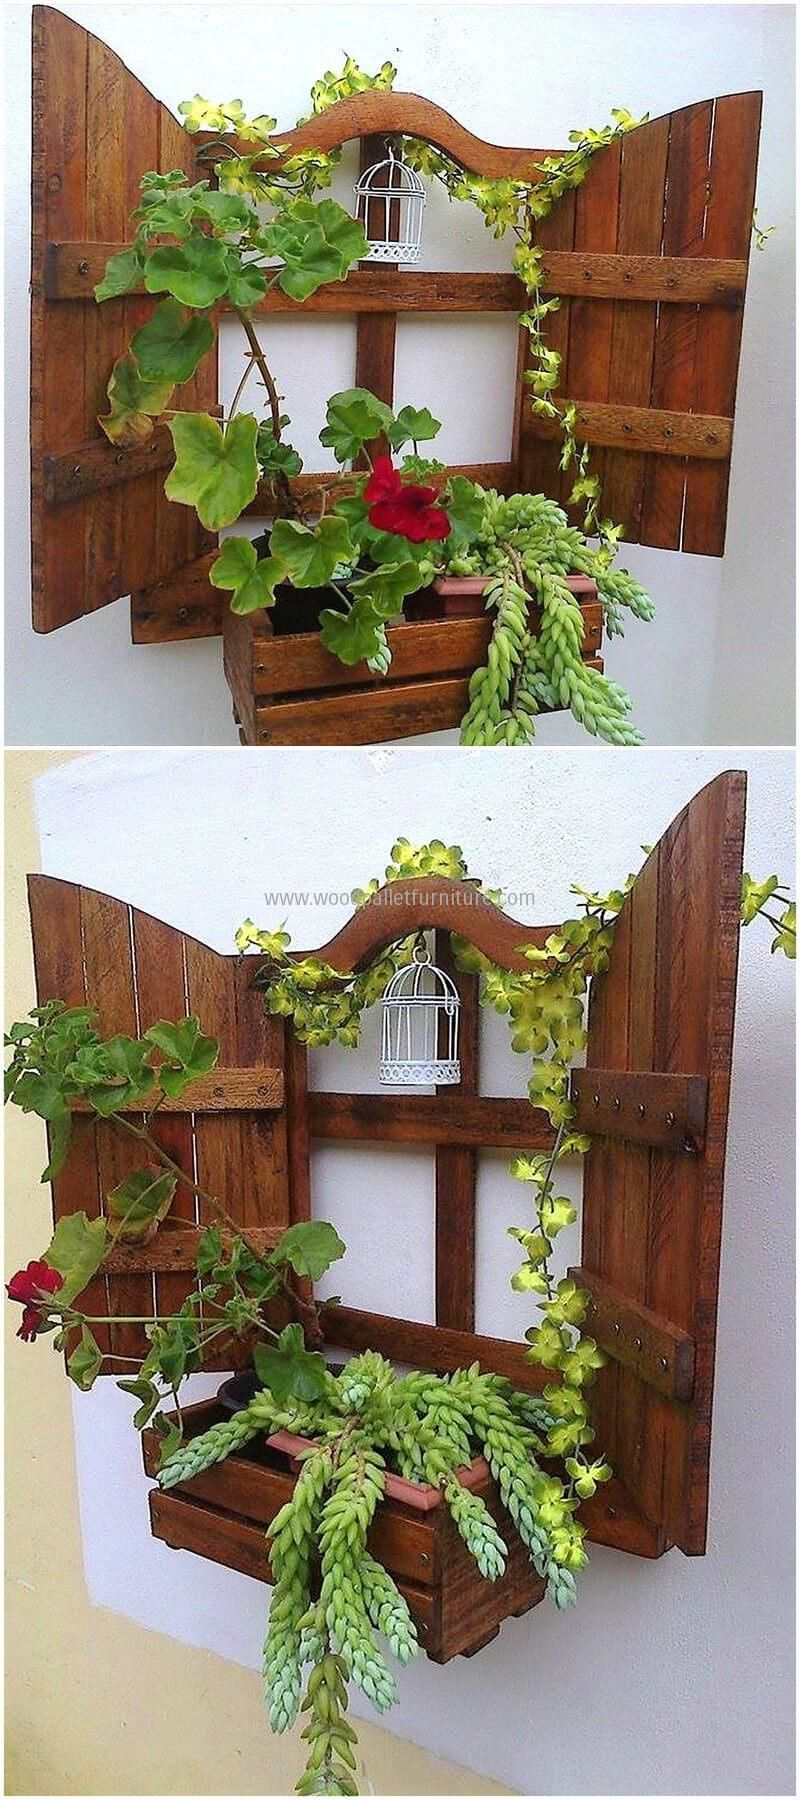 Awesome DIY Wood Pallet Recycled Ideas #diywalldecor